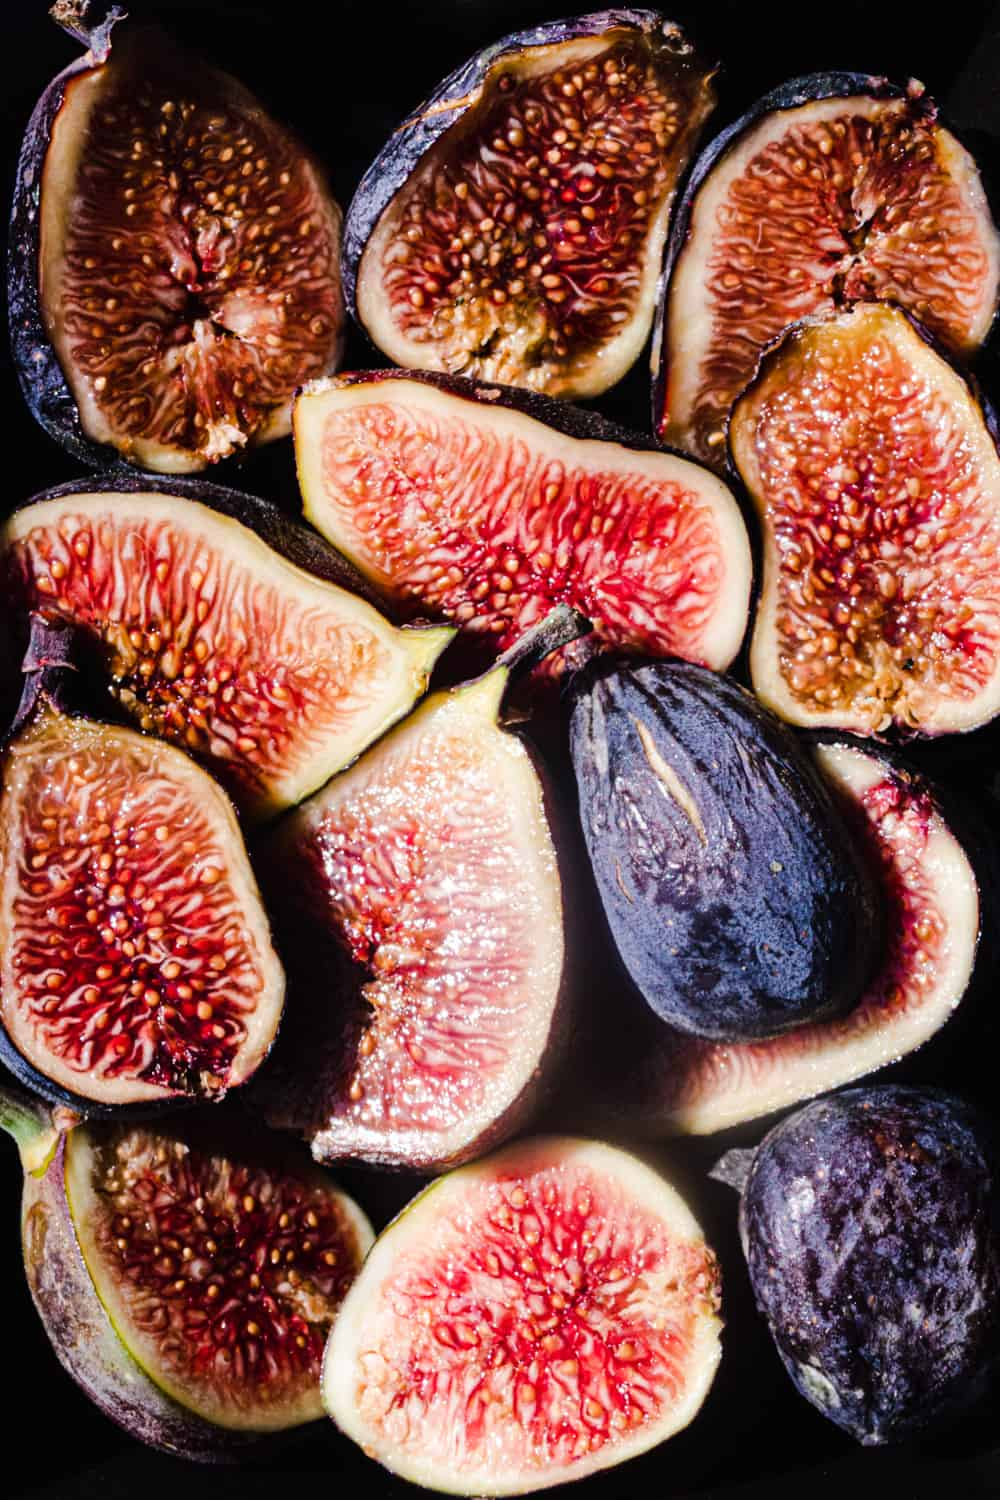 Perfectly ripe fresh figs cut in half, revealing theirs soft and jammy interior.